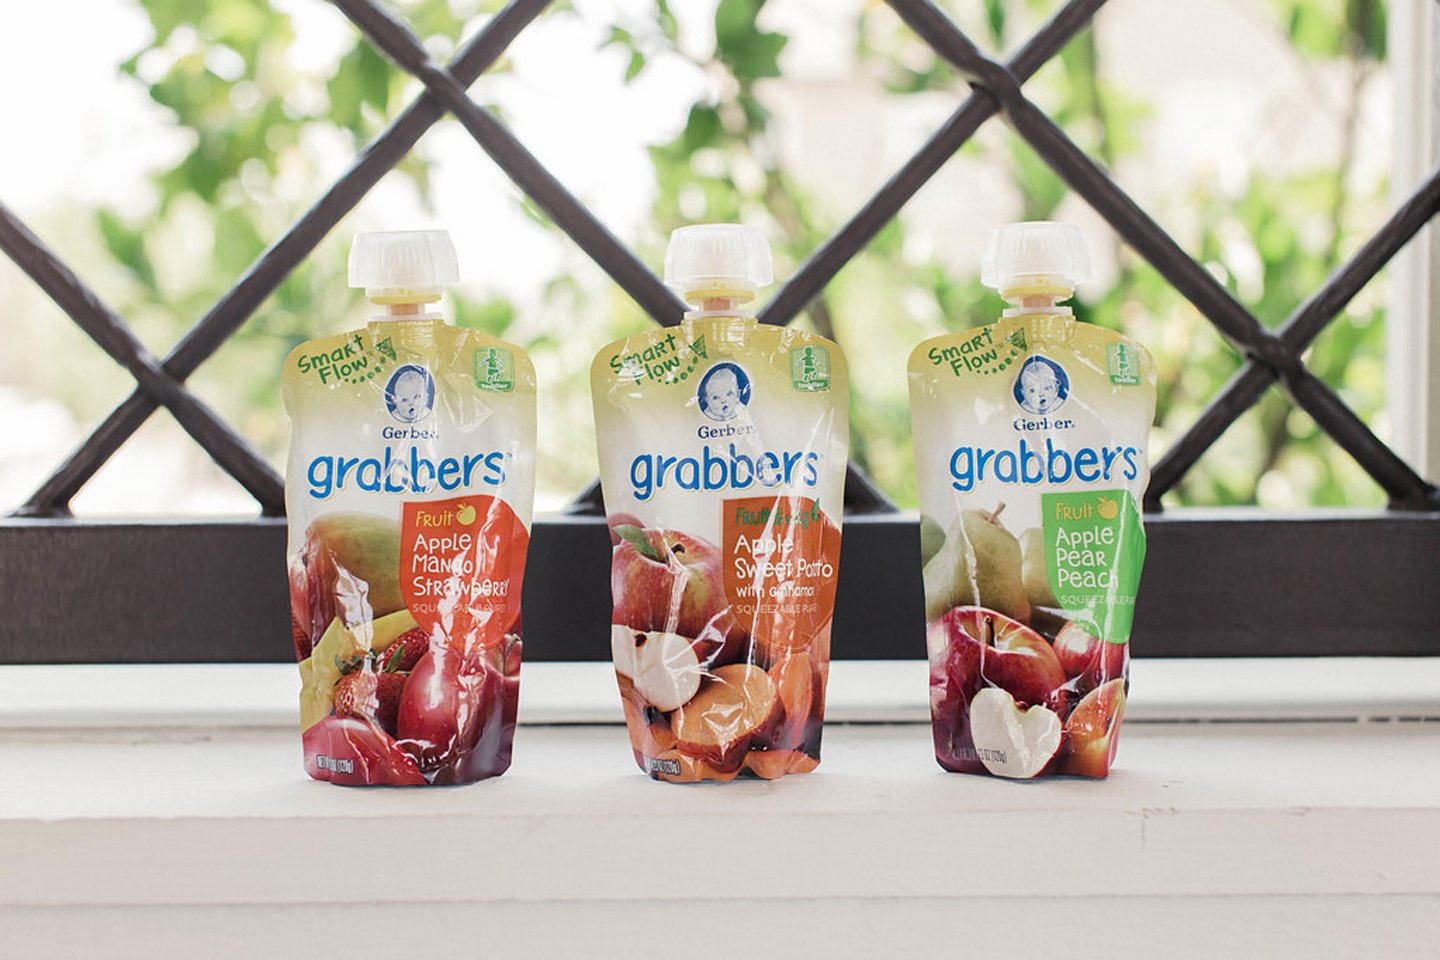 merricksart.com | Gerber Grabber pouches with a new smart flow spout makes for less spills!